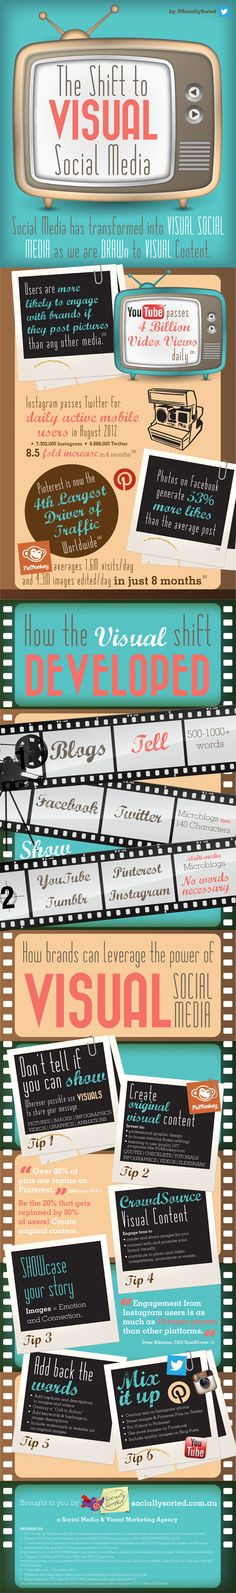 6 Tips para ser más visual con Social Media - Infografía